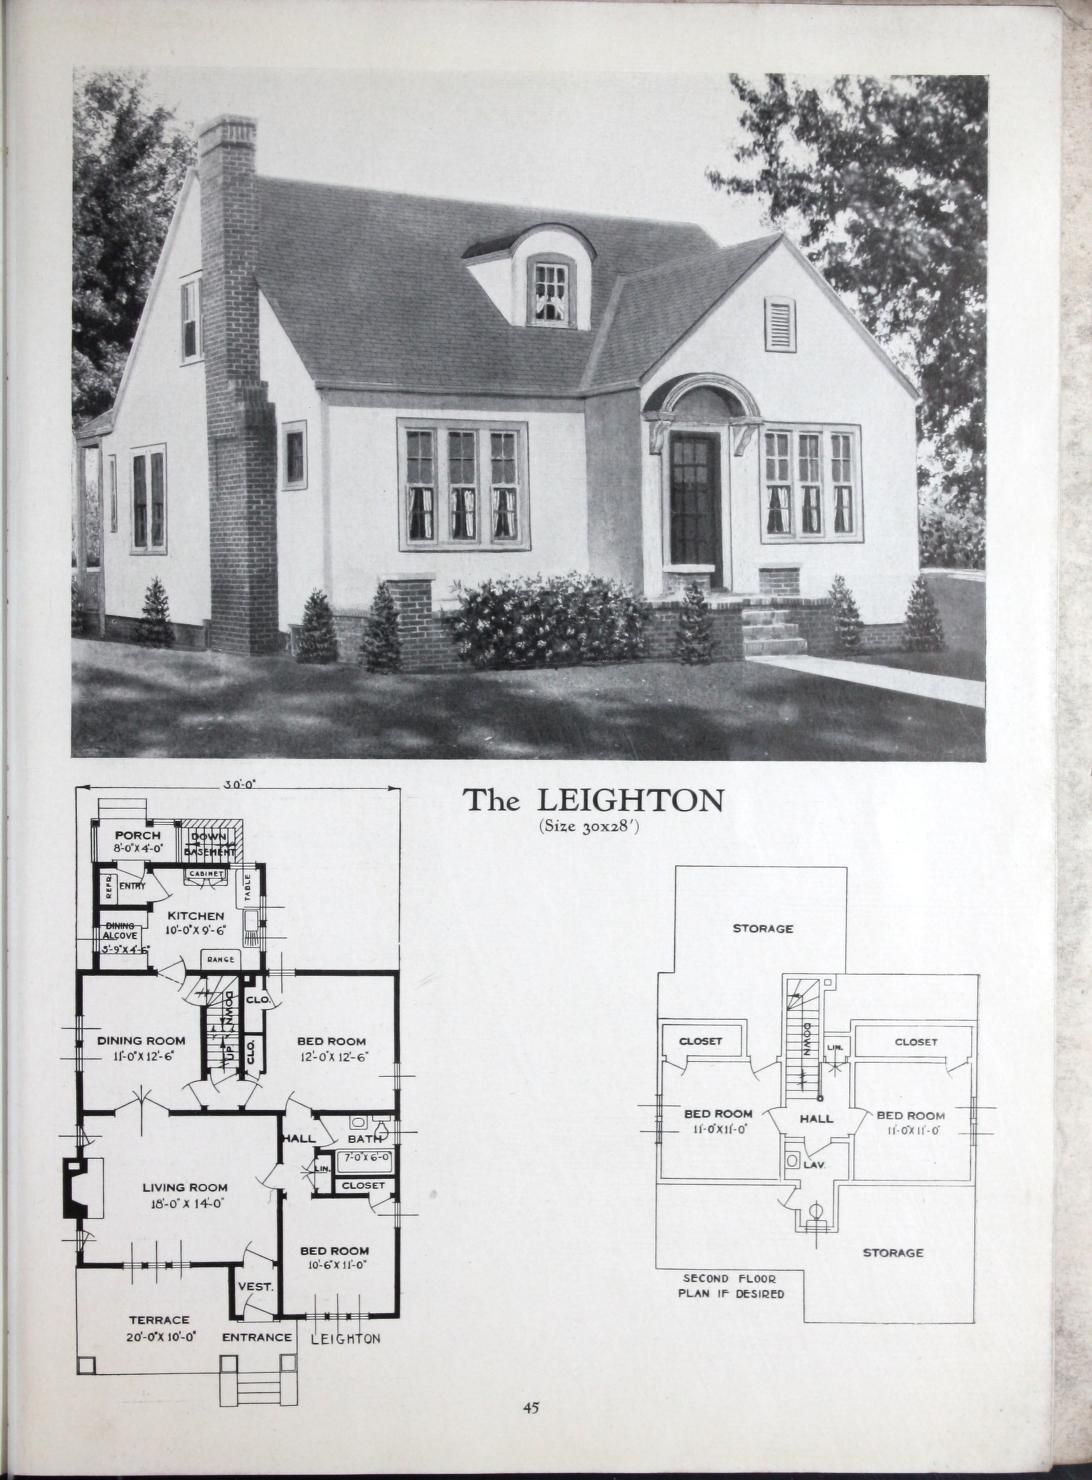 Homes of brick and stucco. in 2019 | Floor plans, Cottage ... on brick ranch house plans, brick house with vinyl siding, brick and rock house plans, two story brick traditional house plans, brick french country house plans, 4-bedroom brick house plans, brick and cedar house plans, brick and stone house plans,